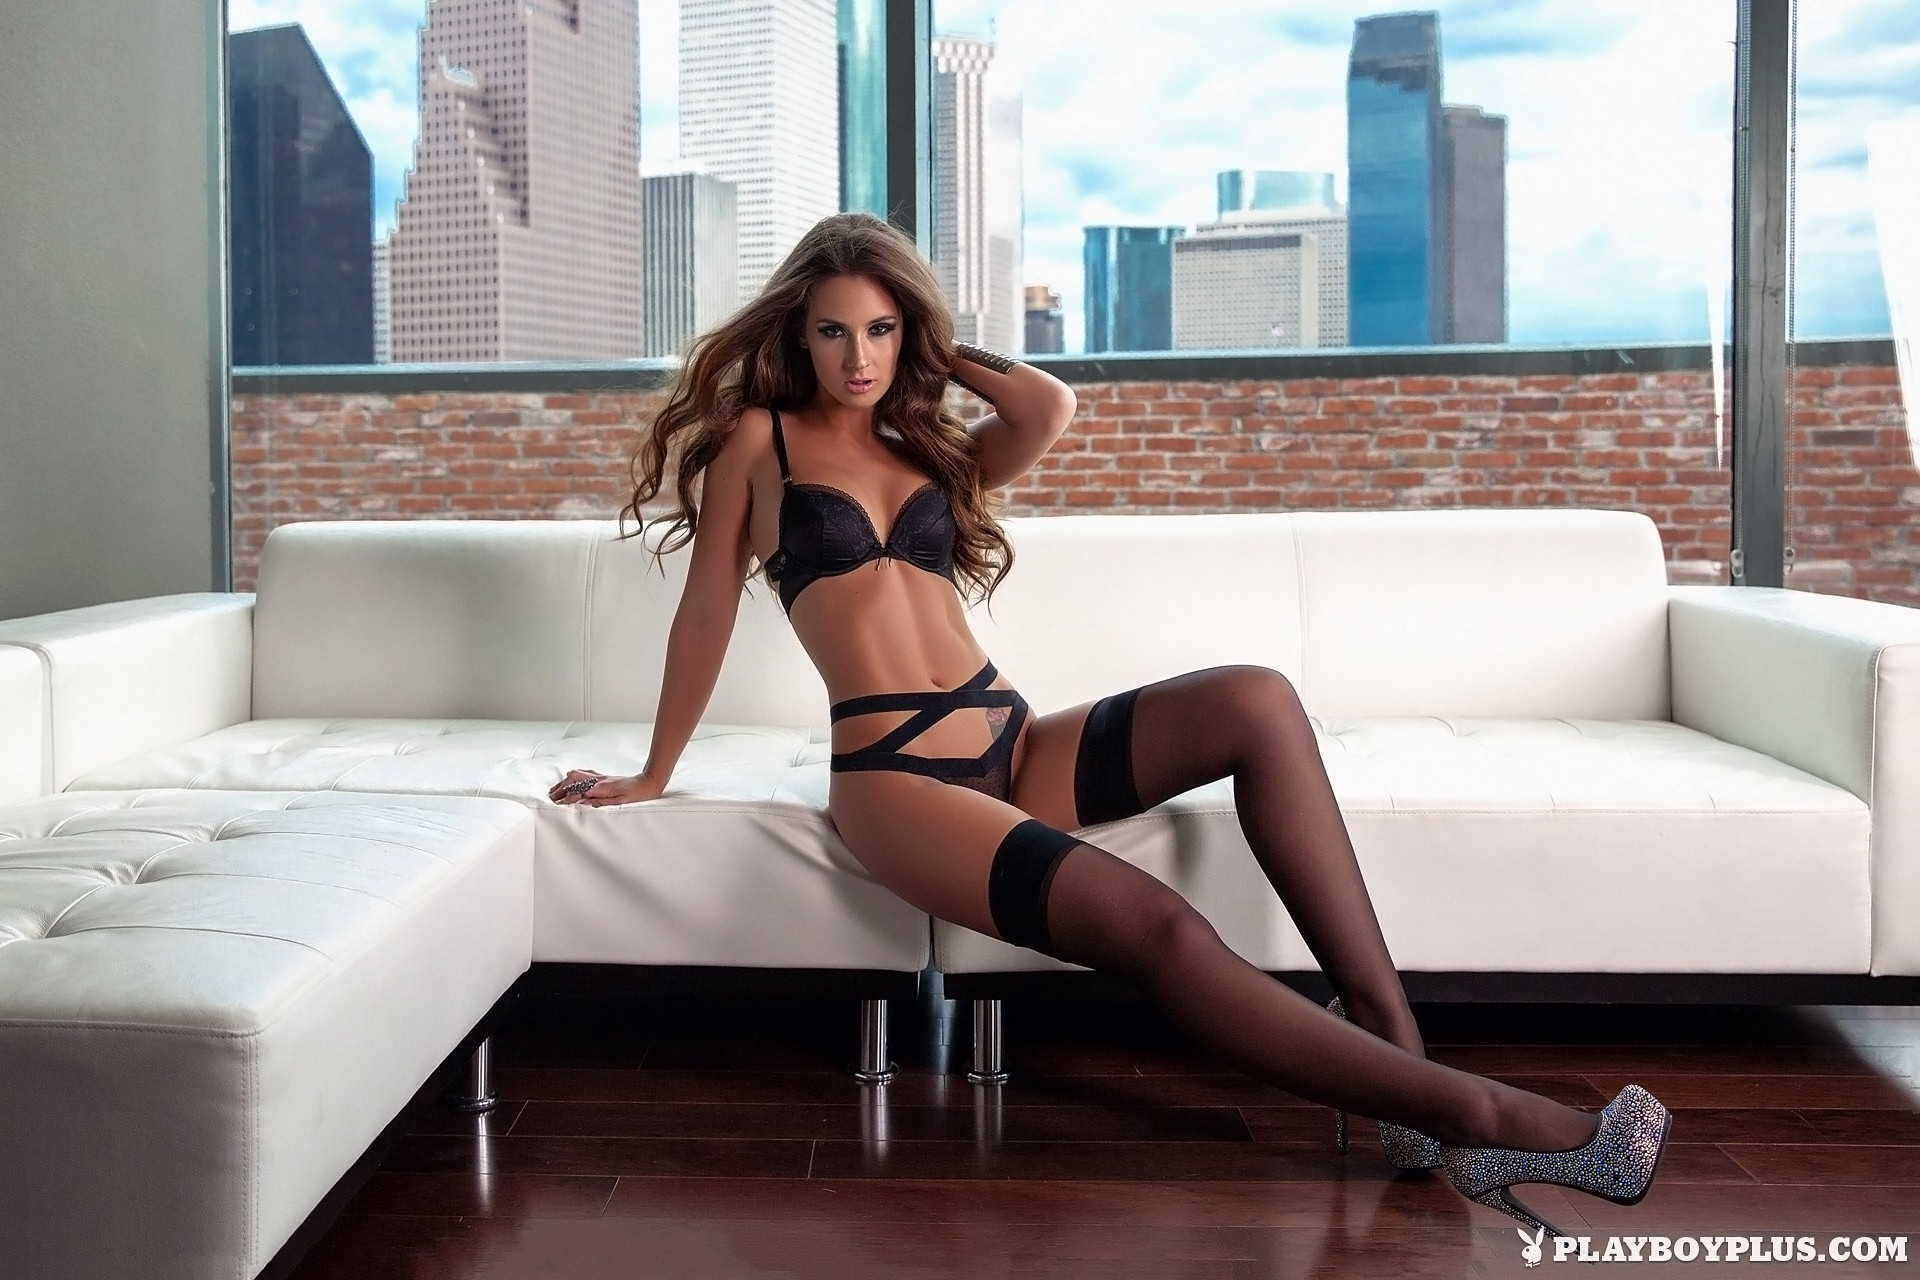 high Playboy heels lingerie stockings and